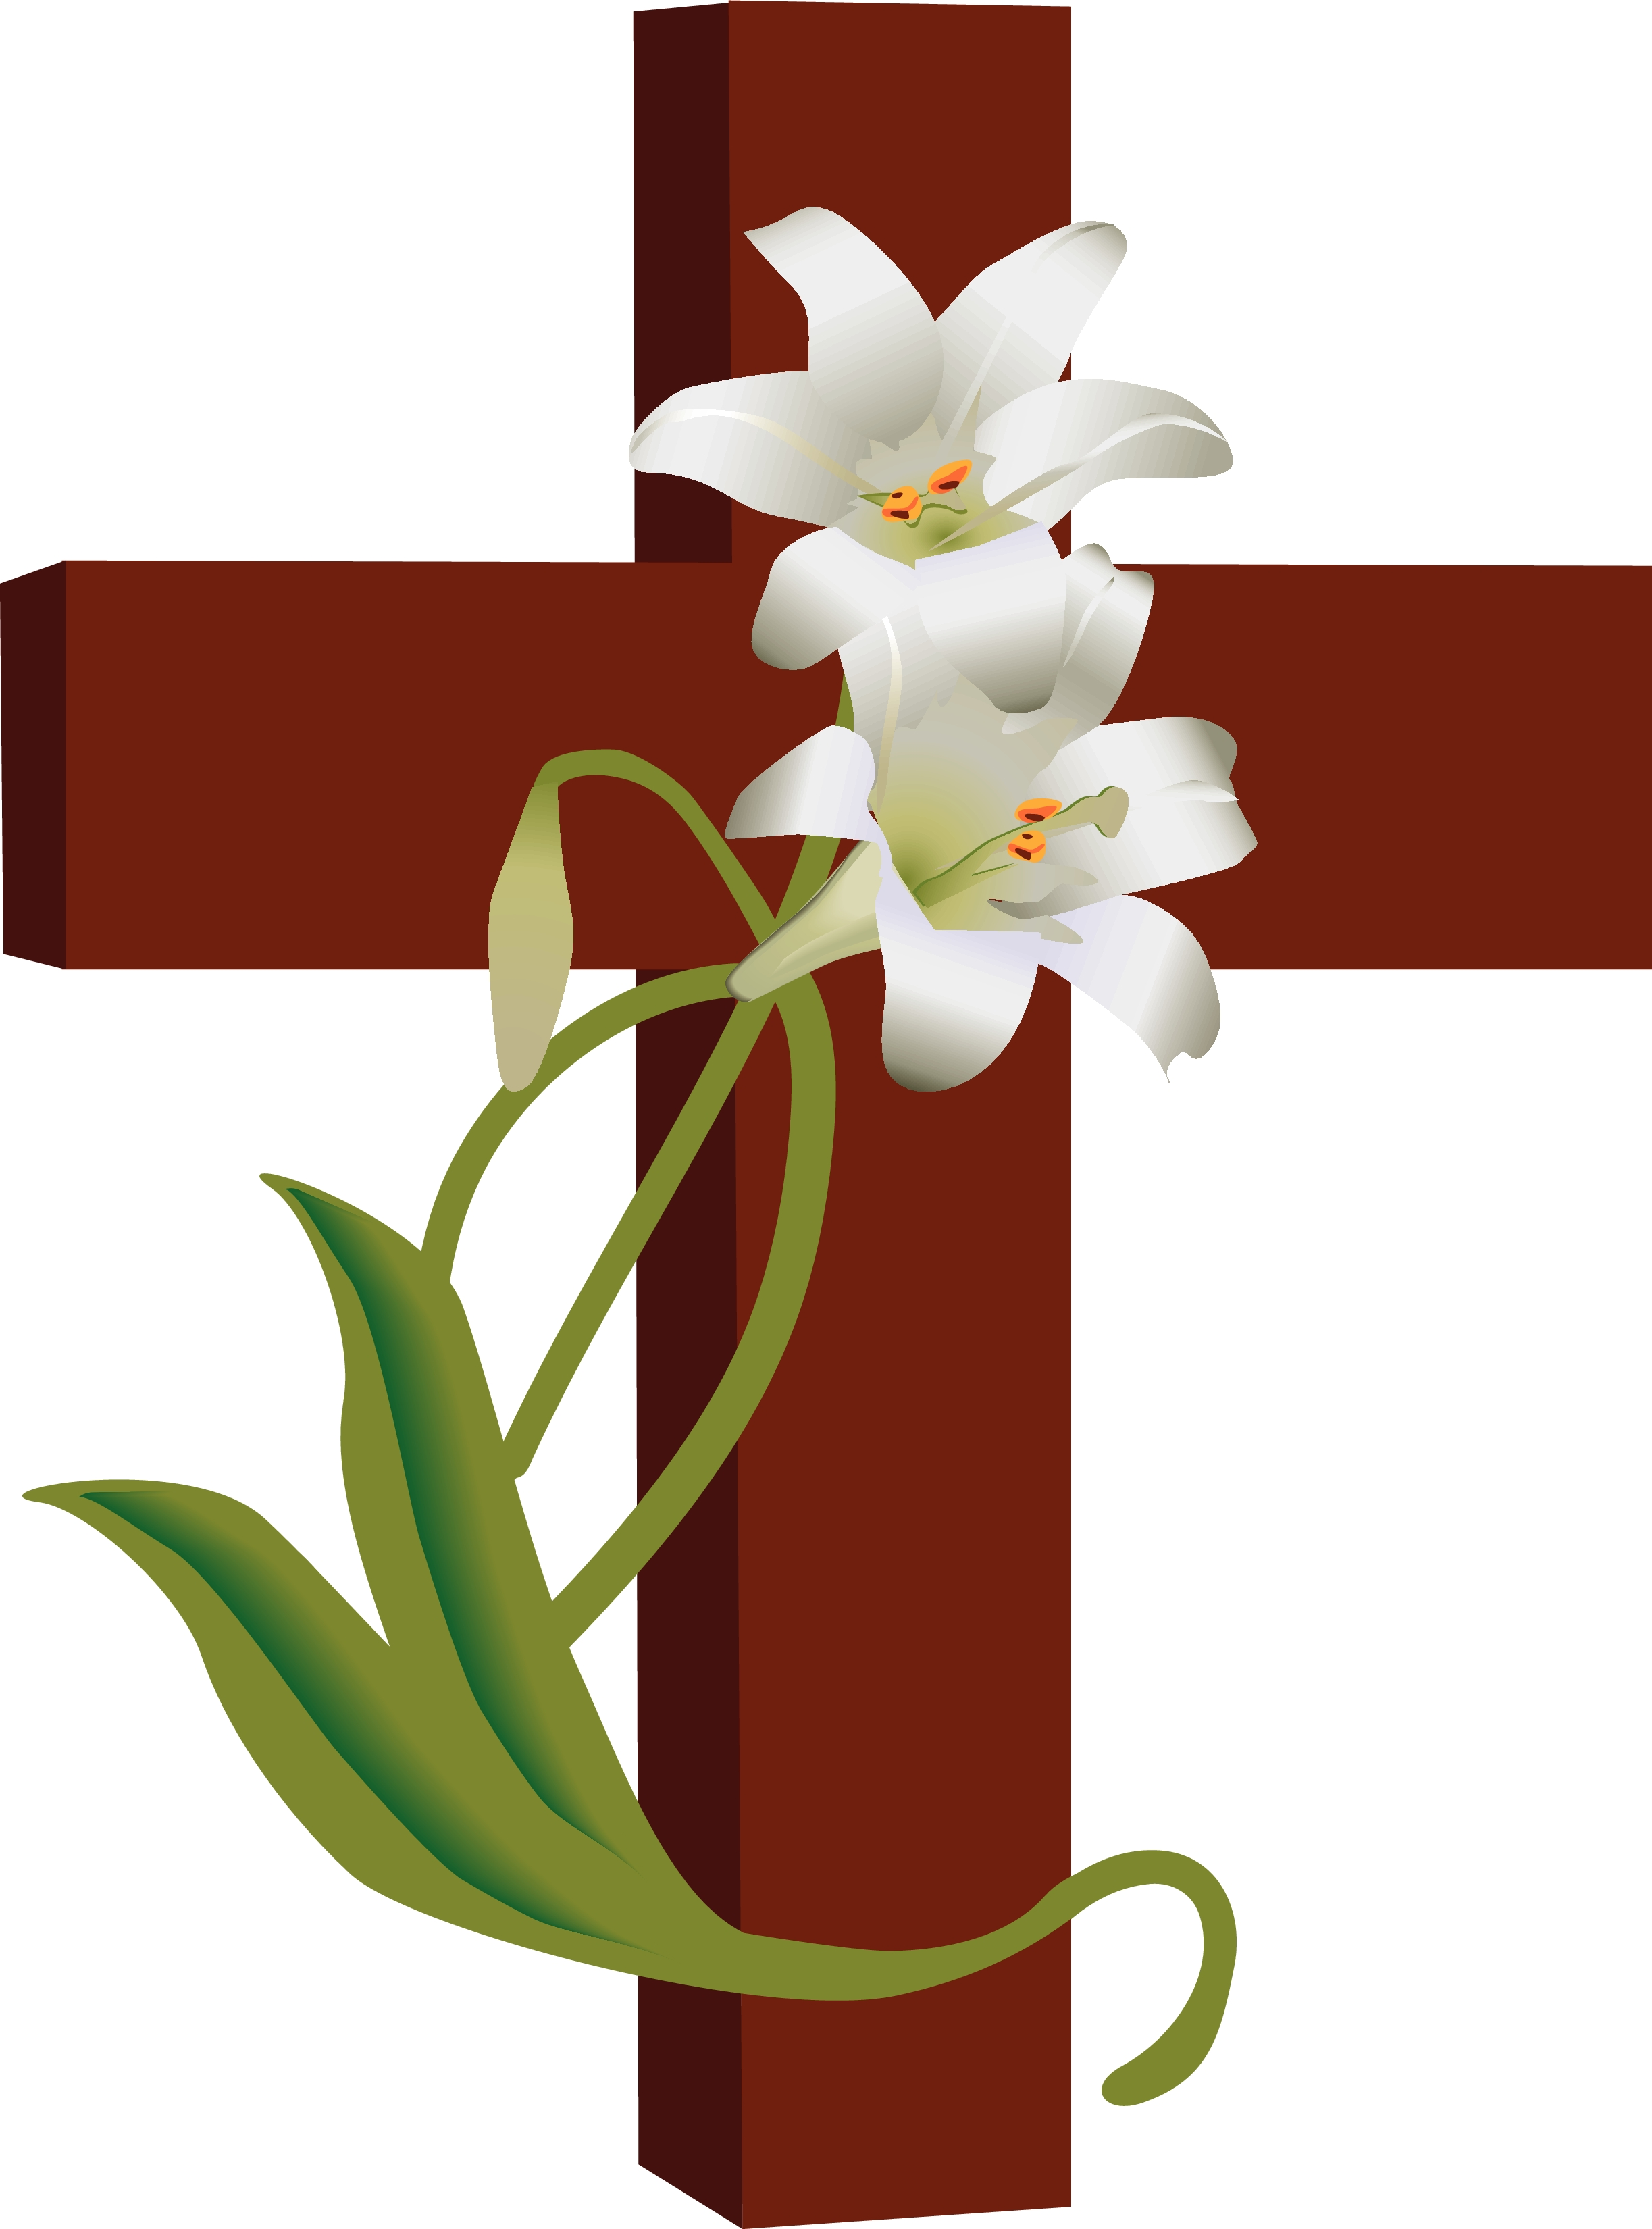 Jesus on the cross clipart